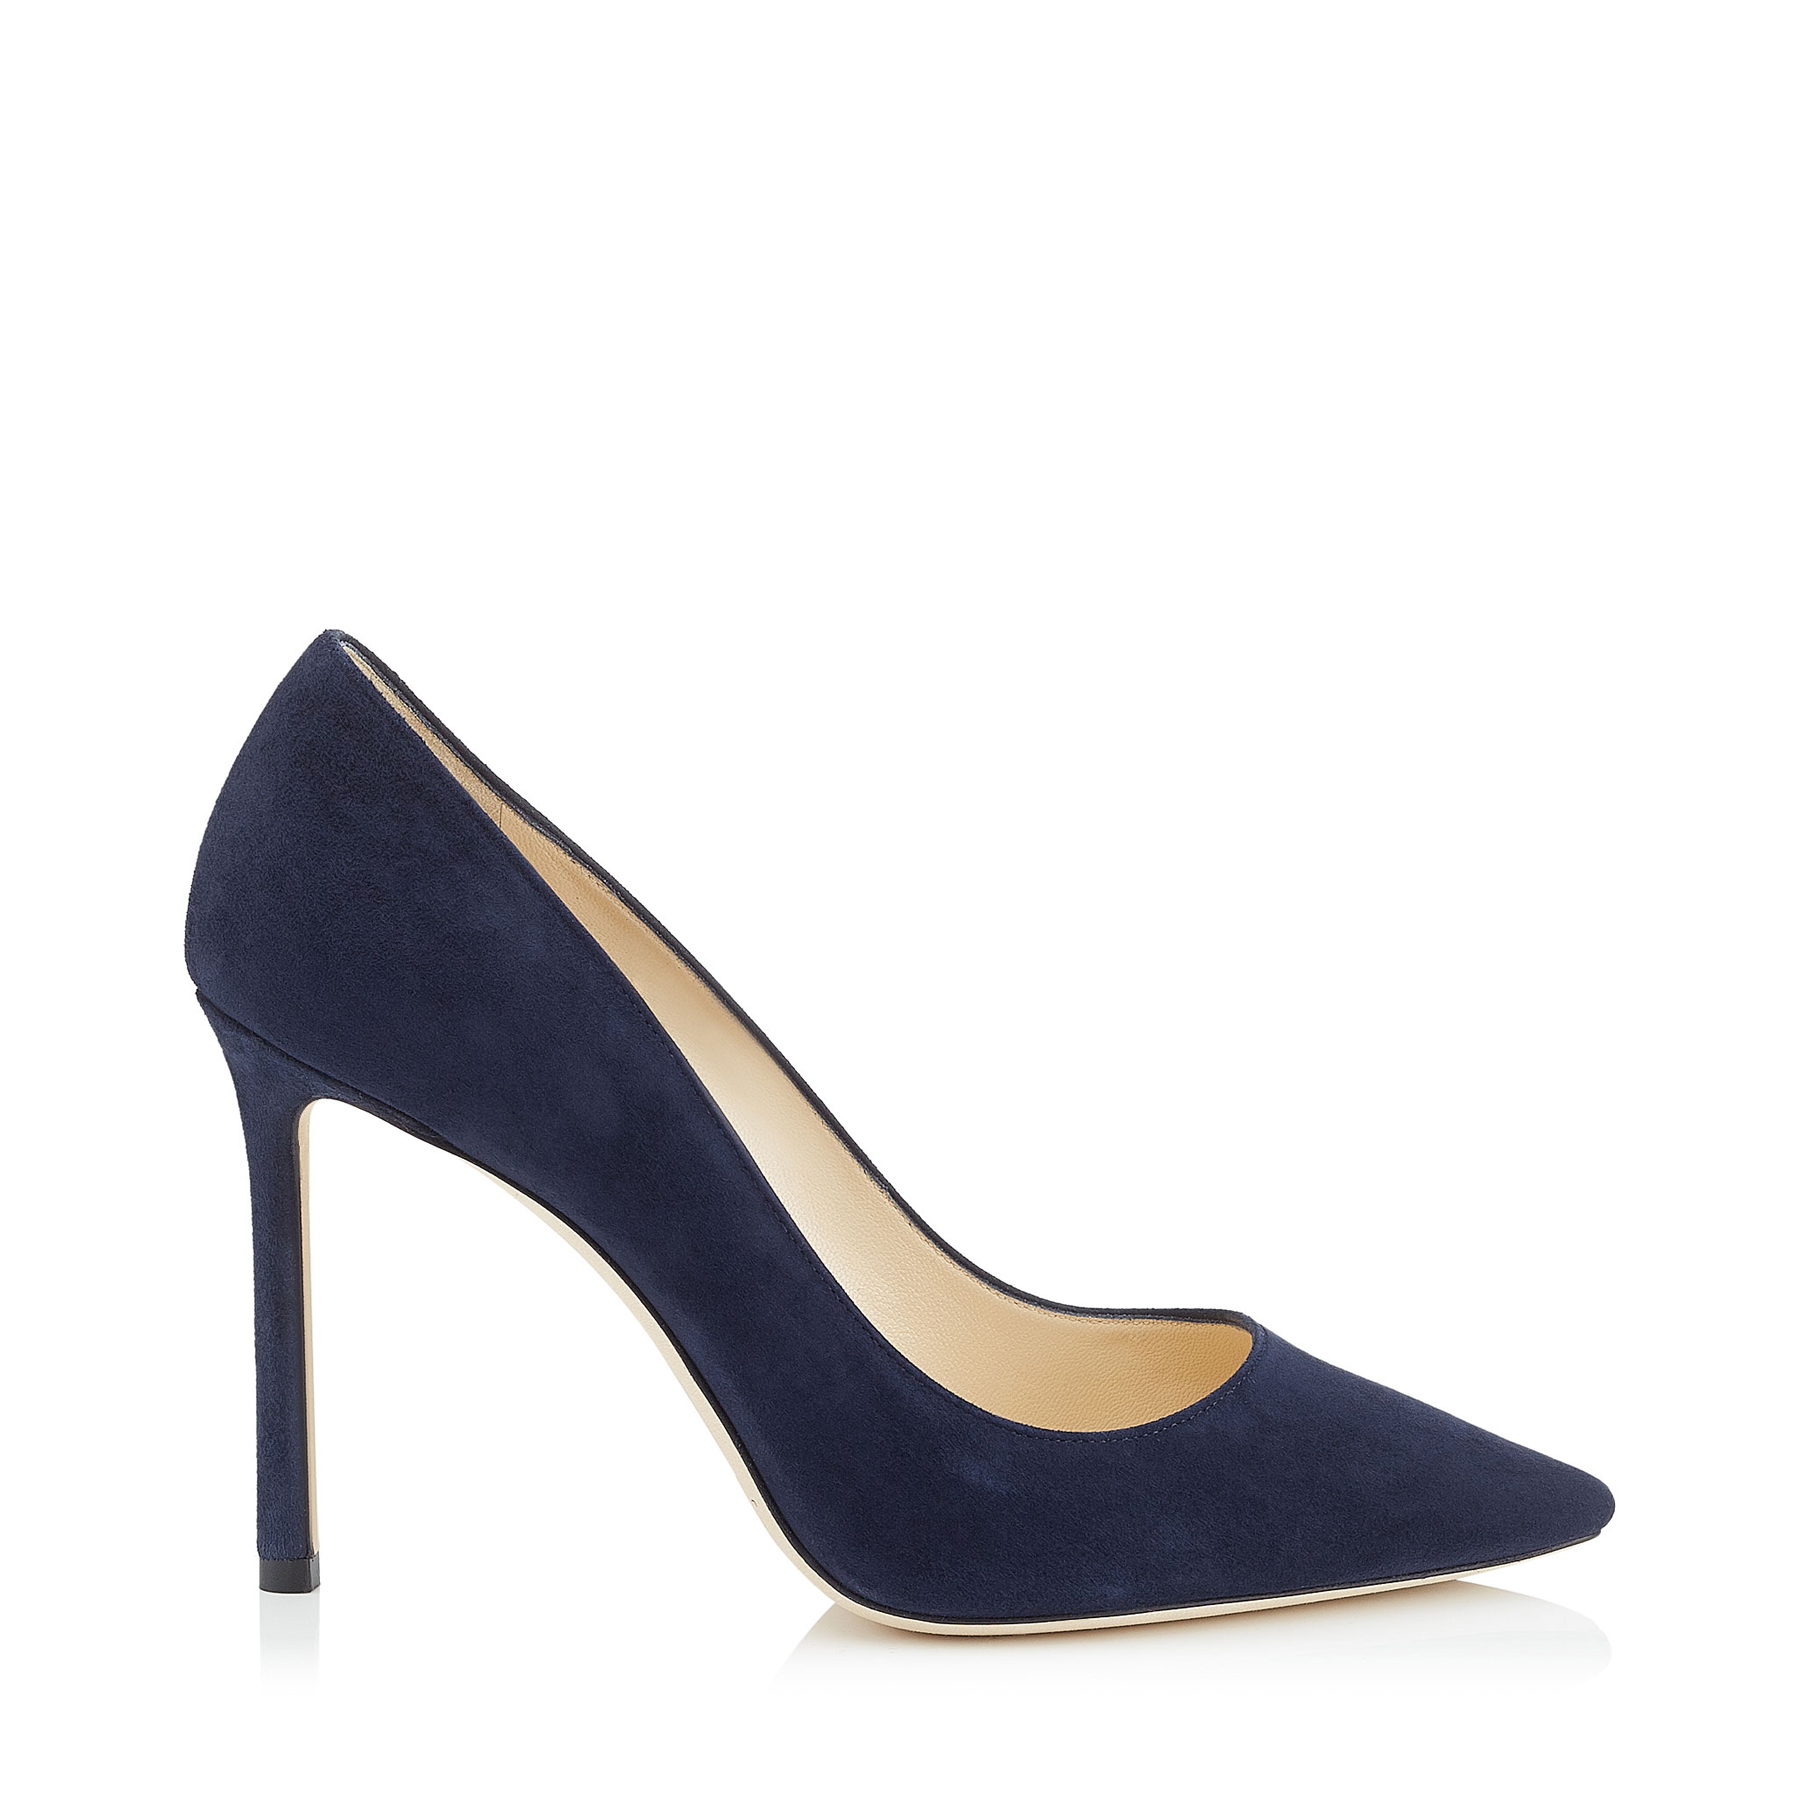 ROMY 100 Navy Suede Pointy Toe Pumps by Jimmy Choo